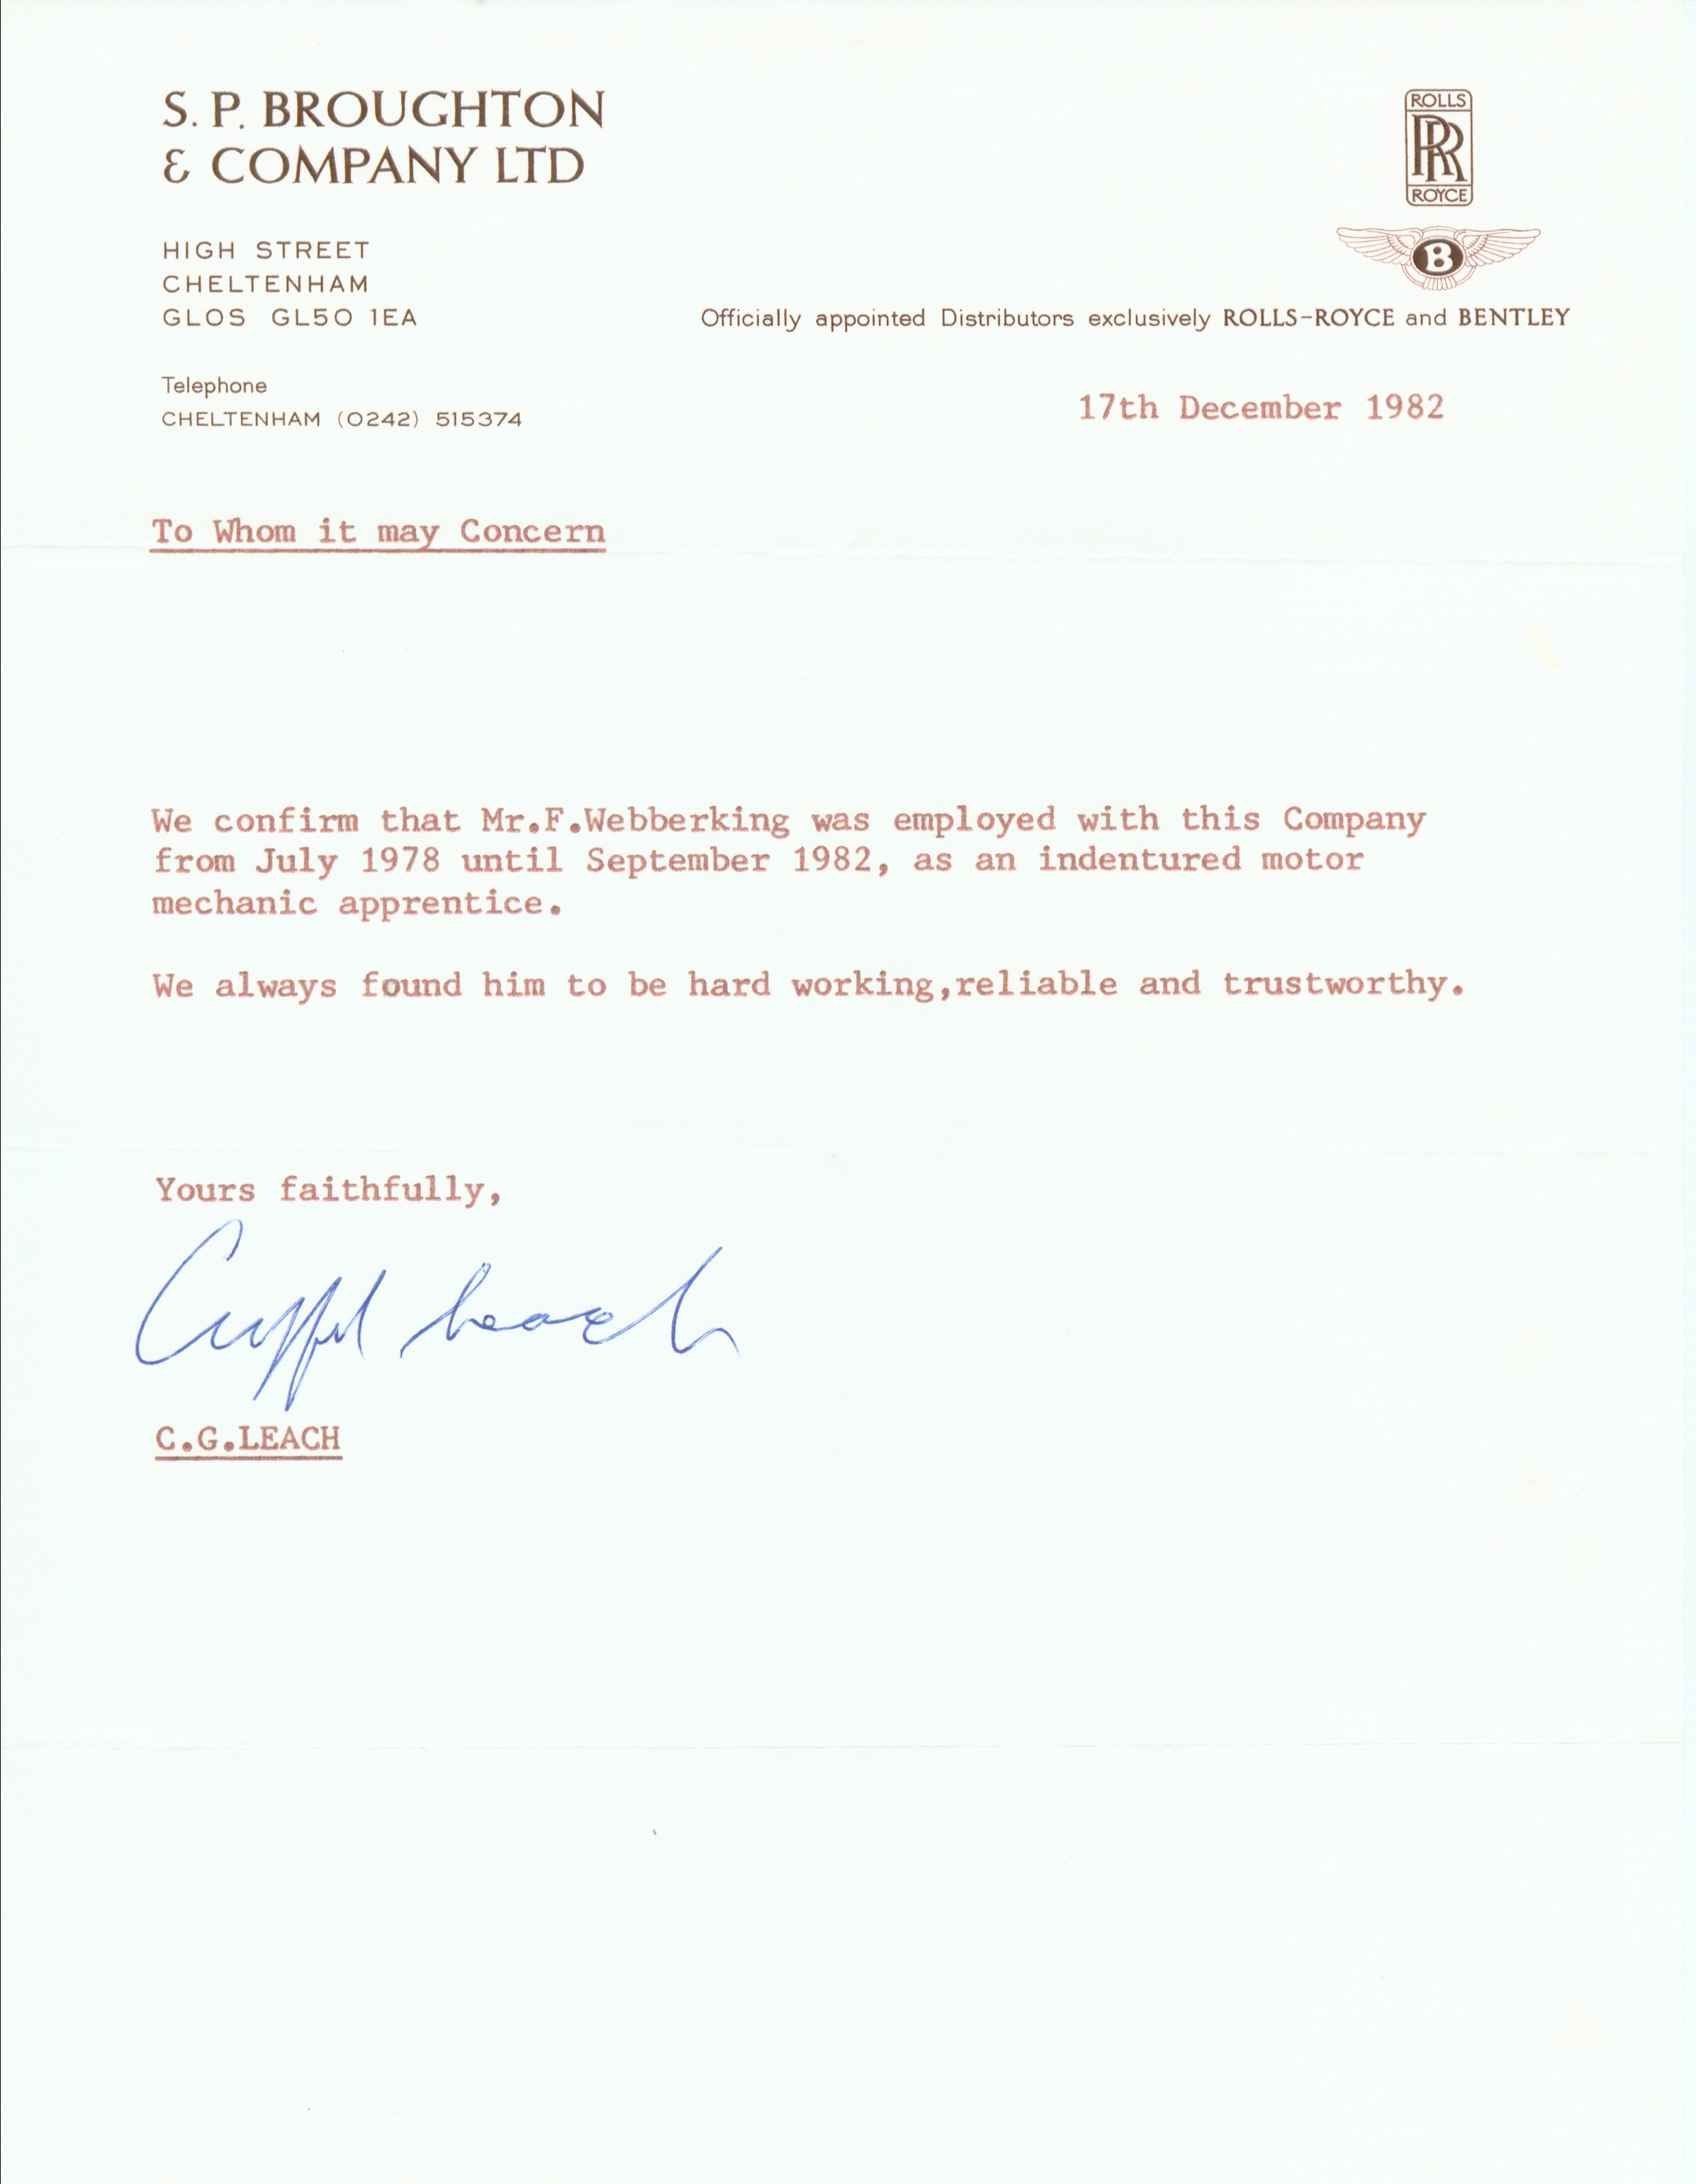 Reference Letter SP Broughtons - Clifford Leach